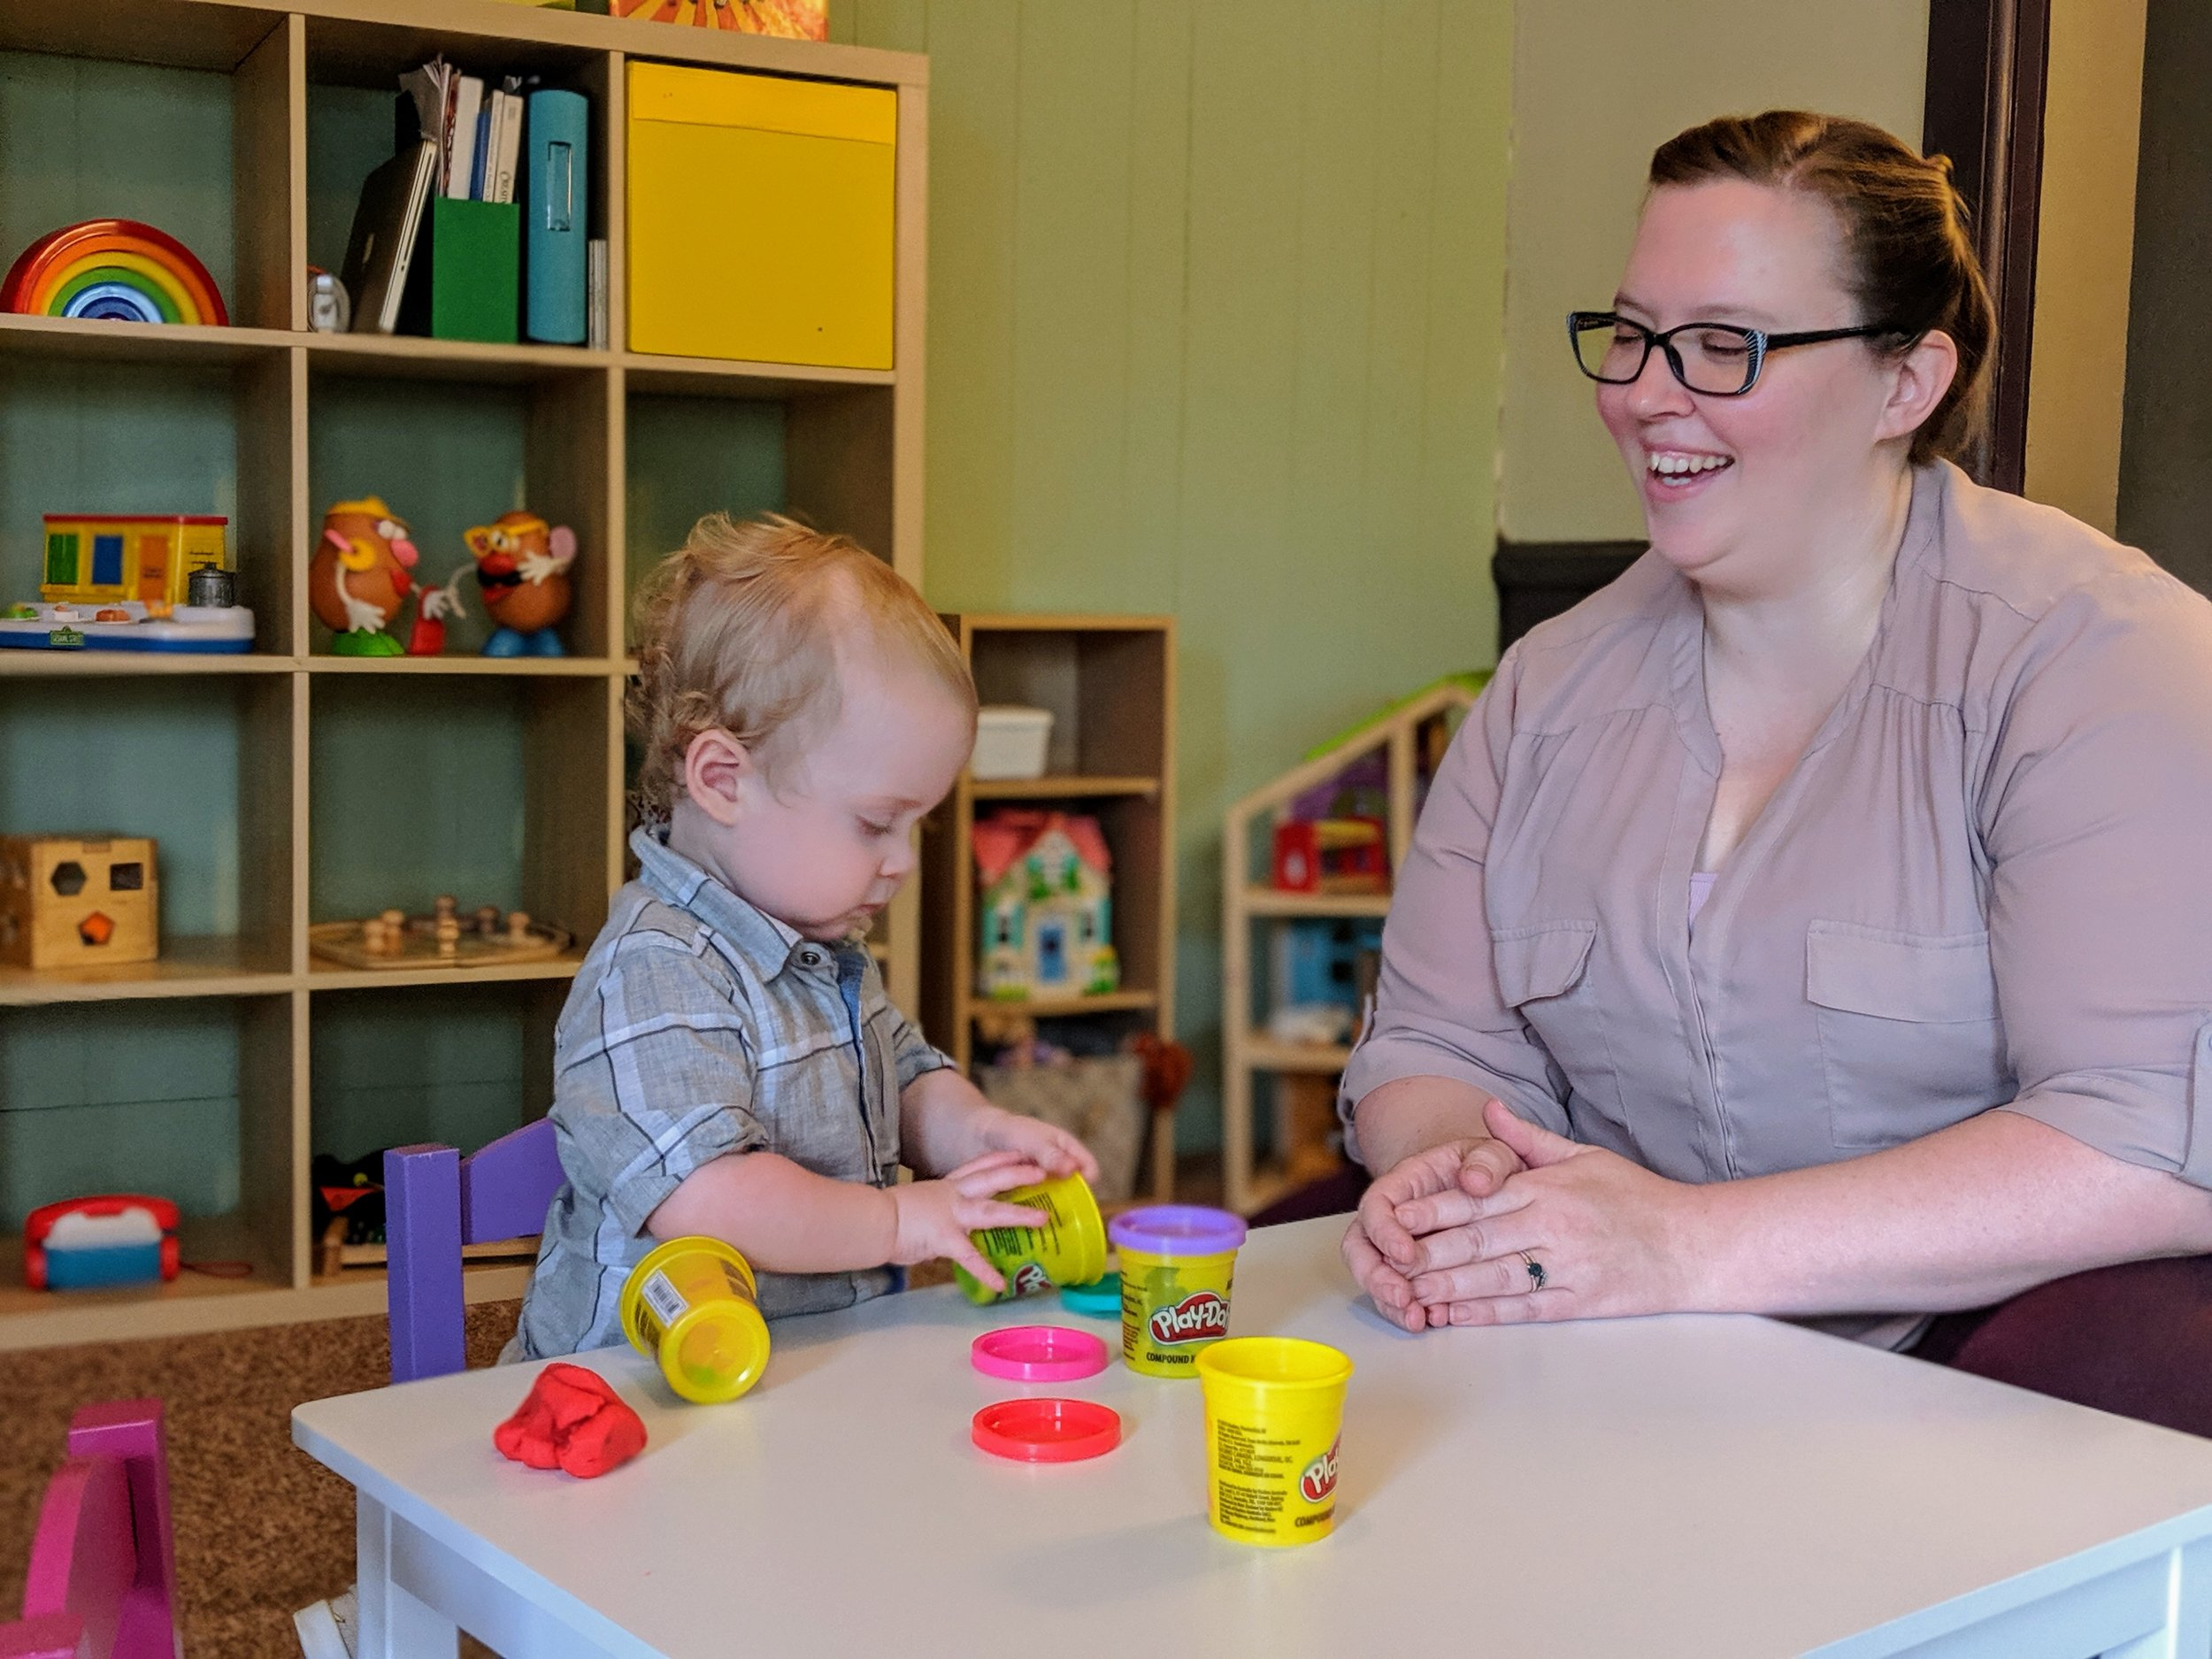 Beth Goodwin brings 10+ years of child development experience to her new program.